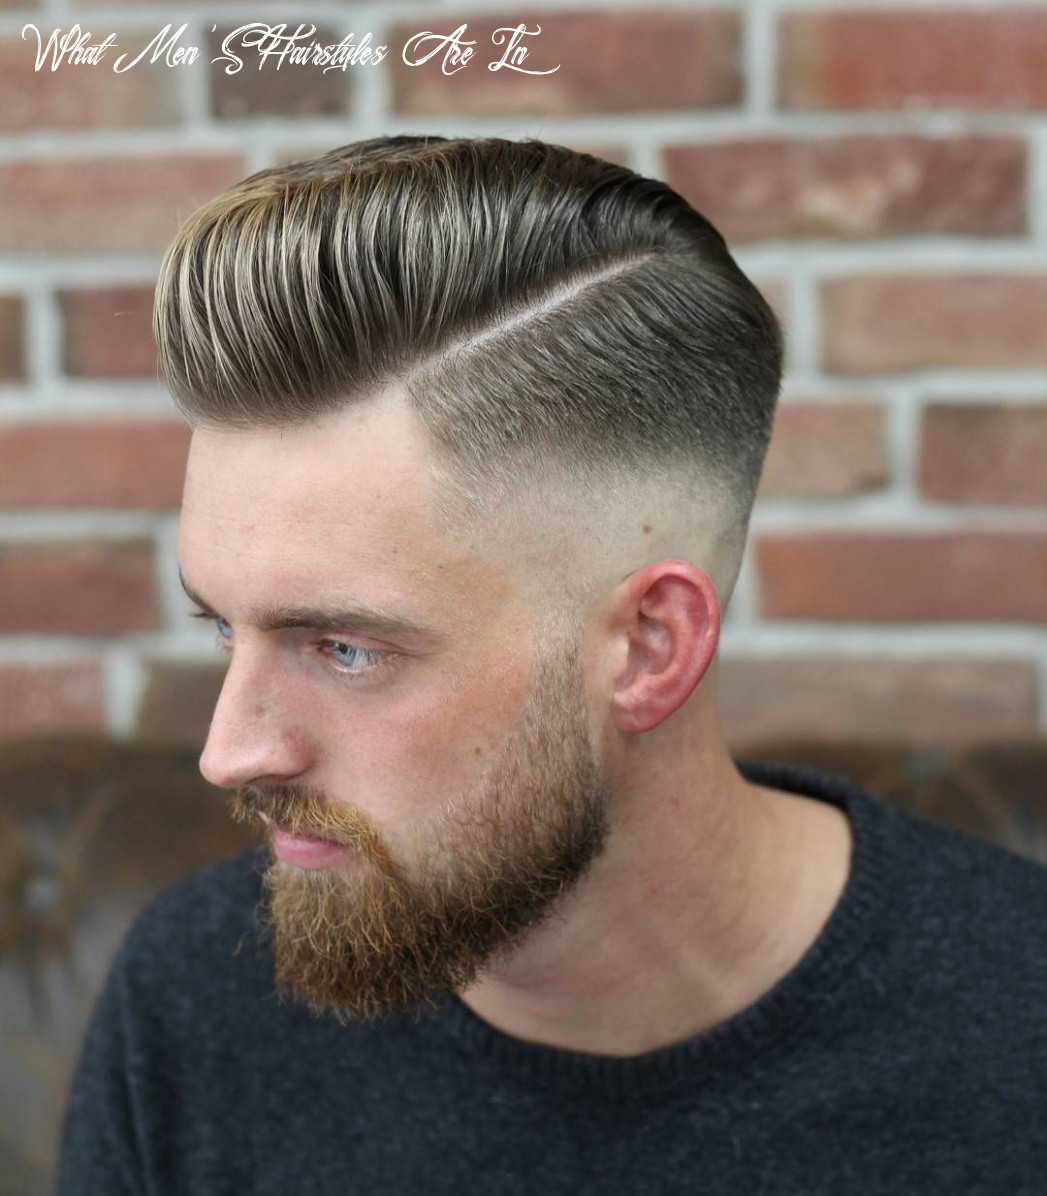 11 cool hairstyles for men (fresh styles)   mens hairstyles